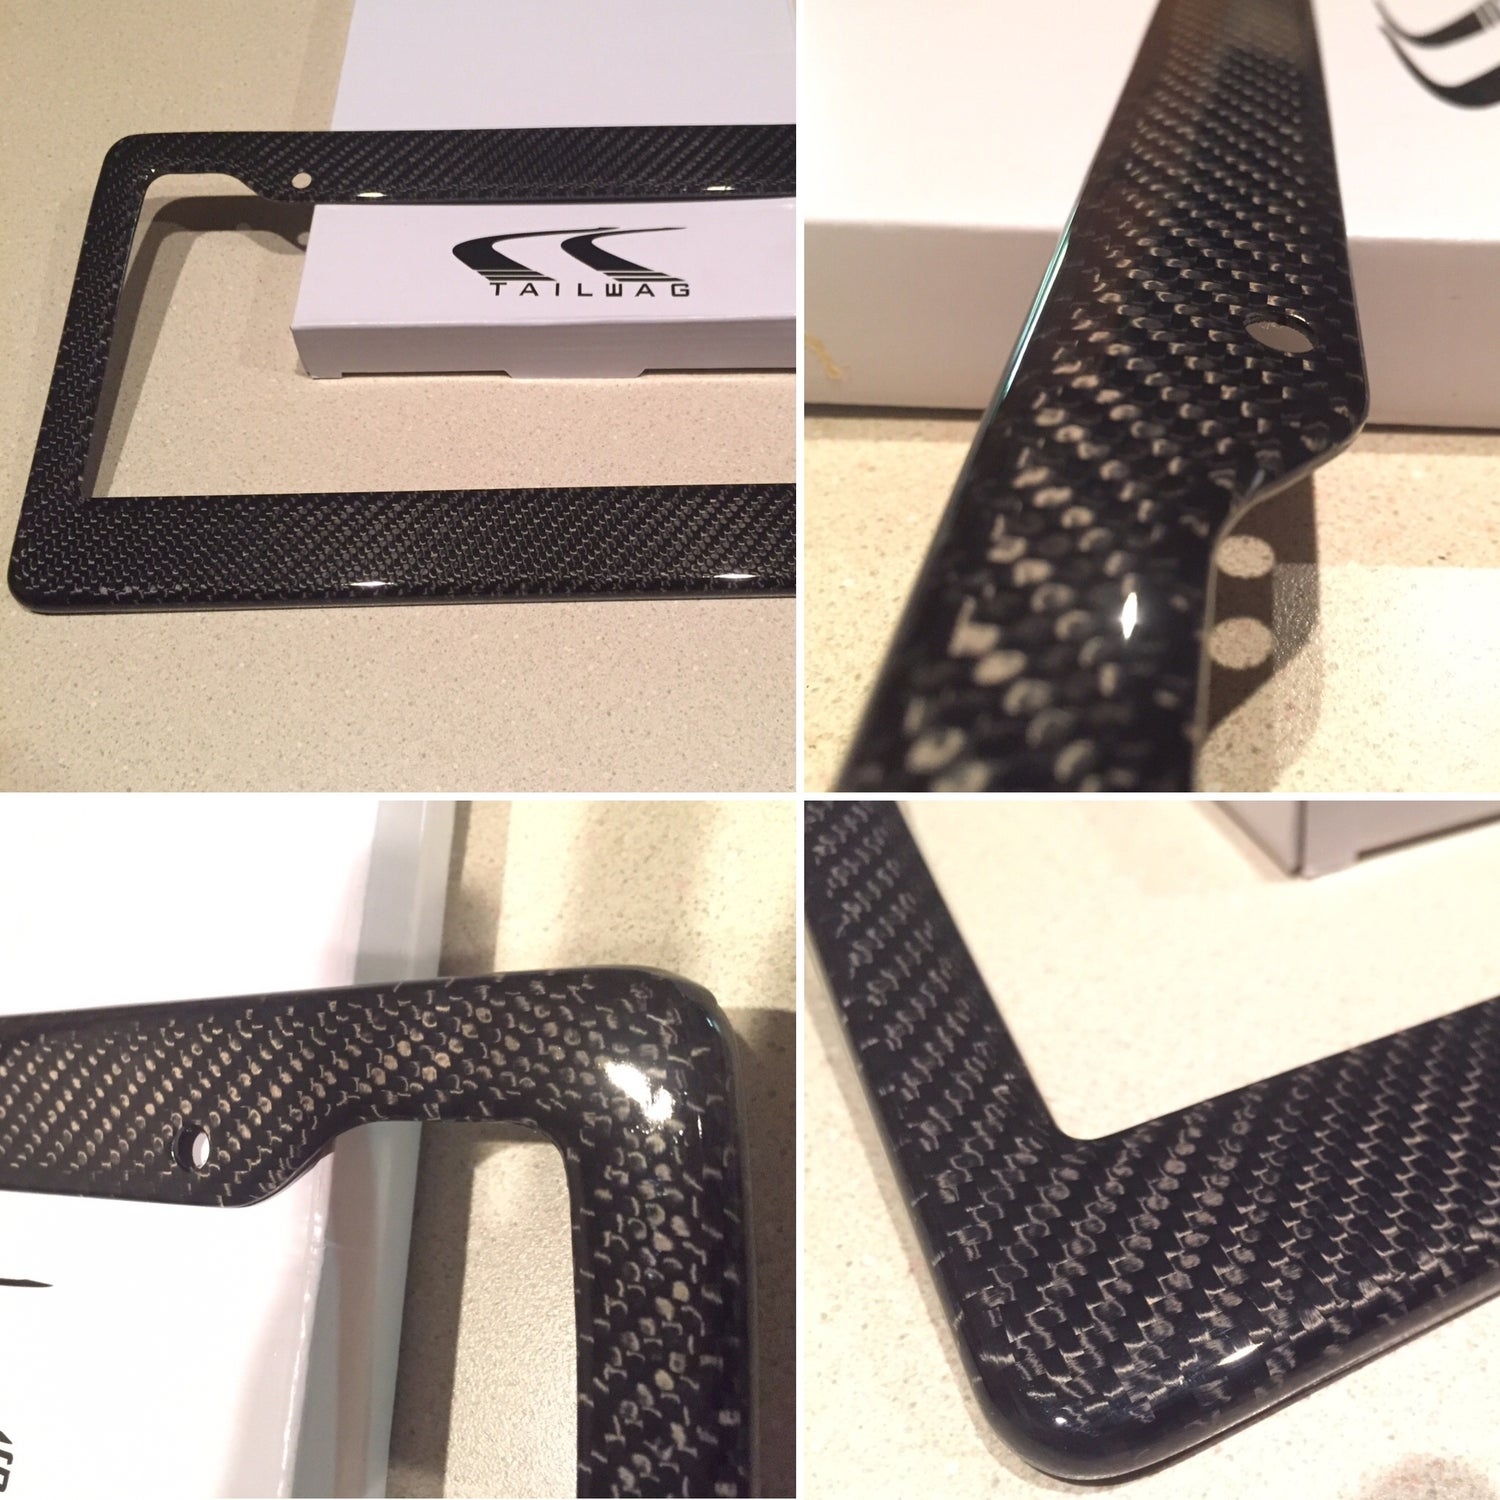 Image of Tailwag Carbon Fiber License Plate Frame